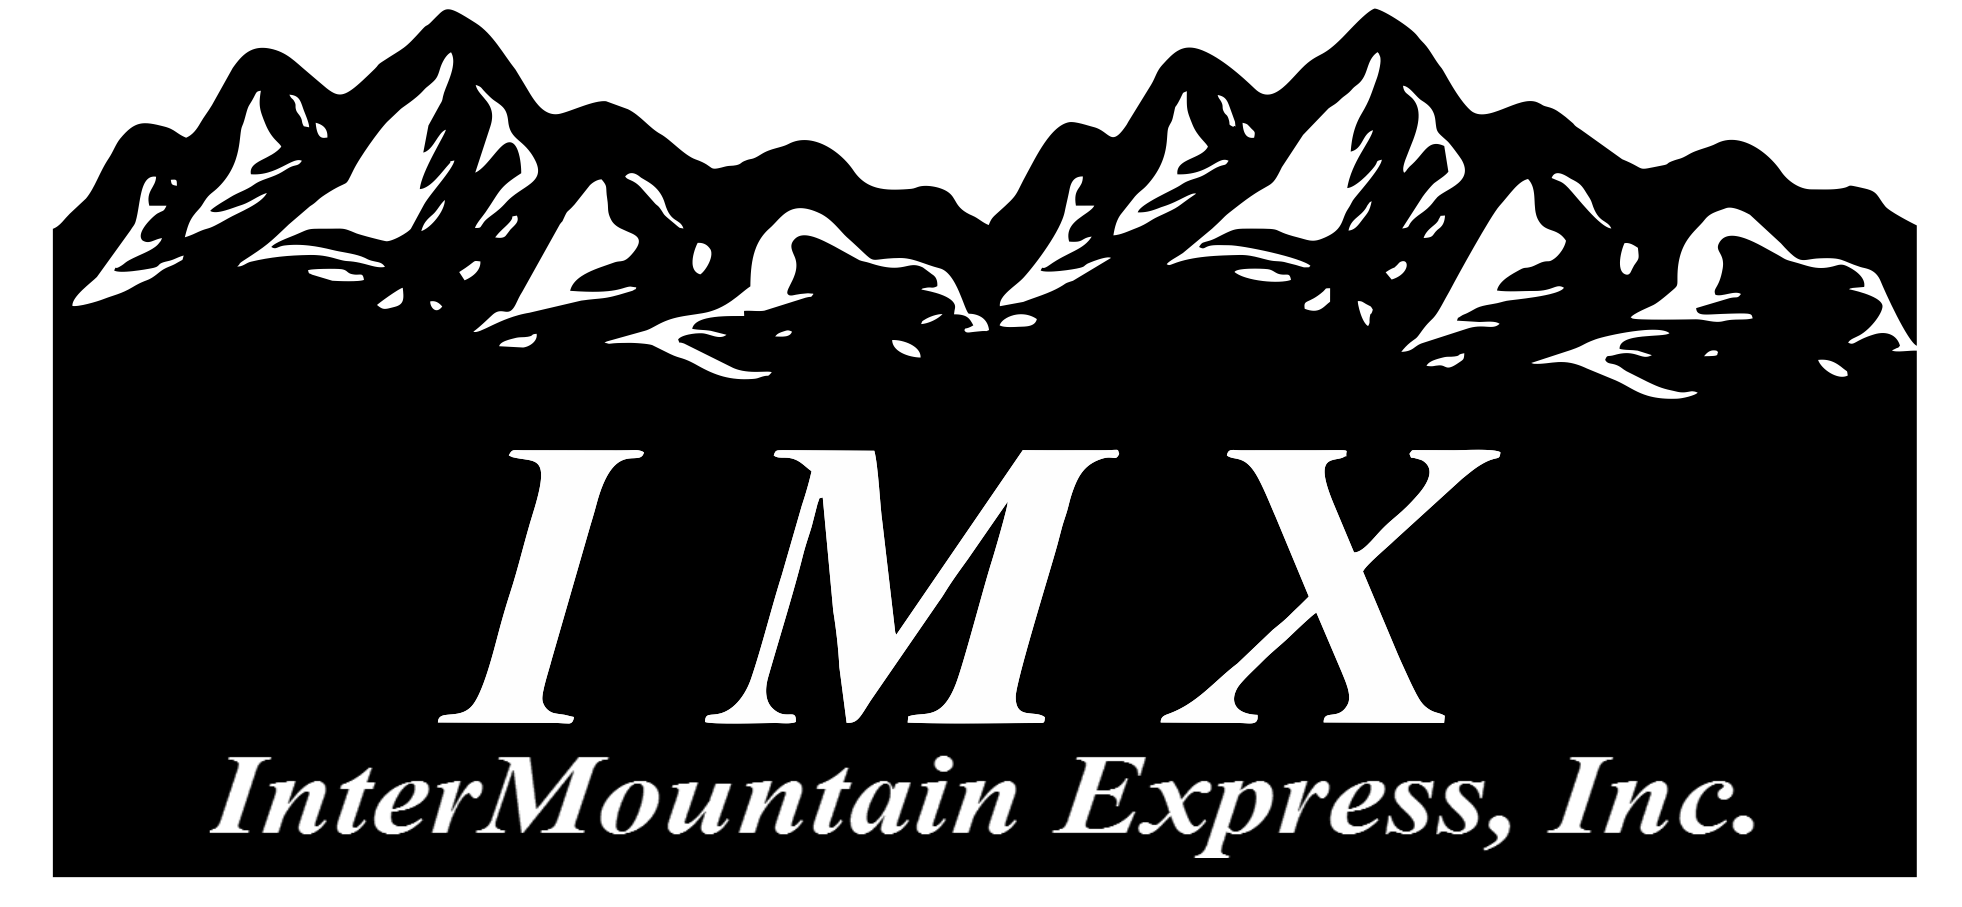 imxtransport.com